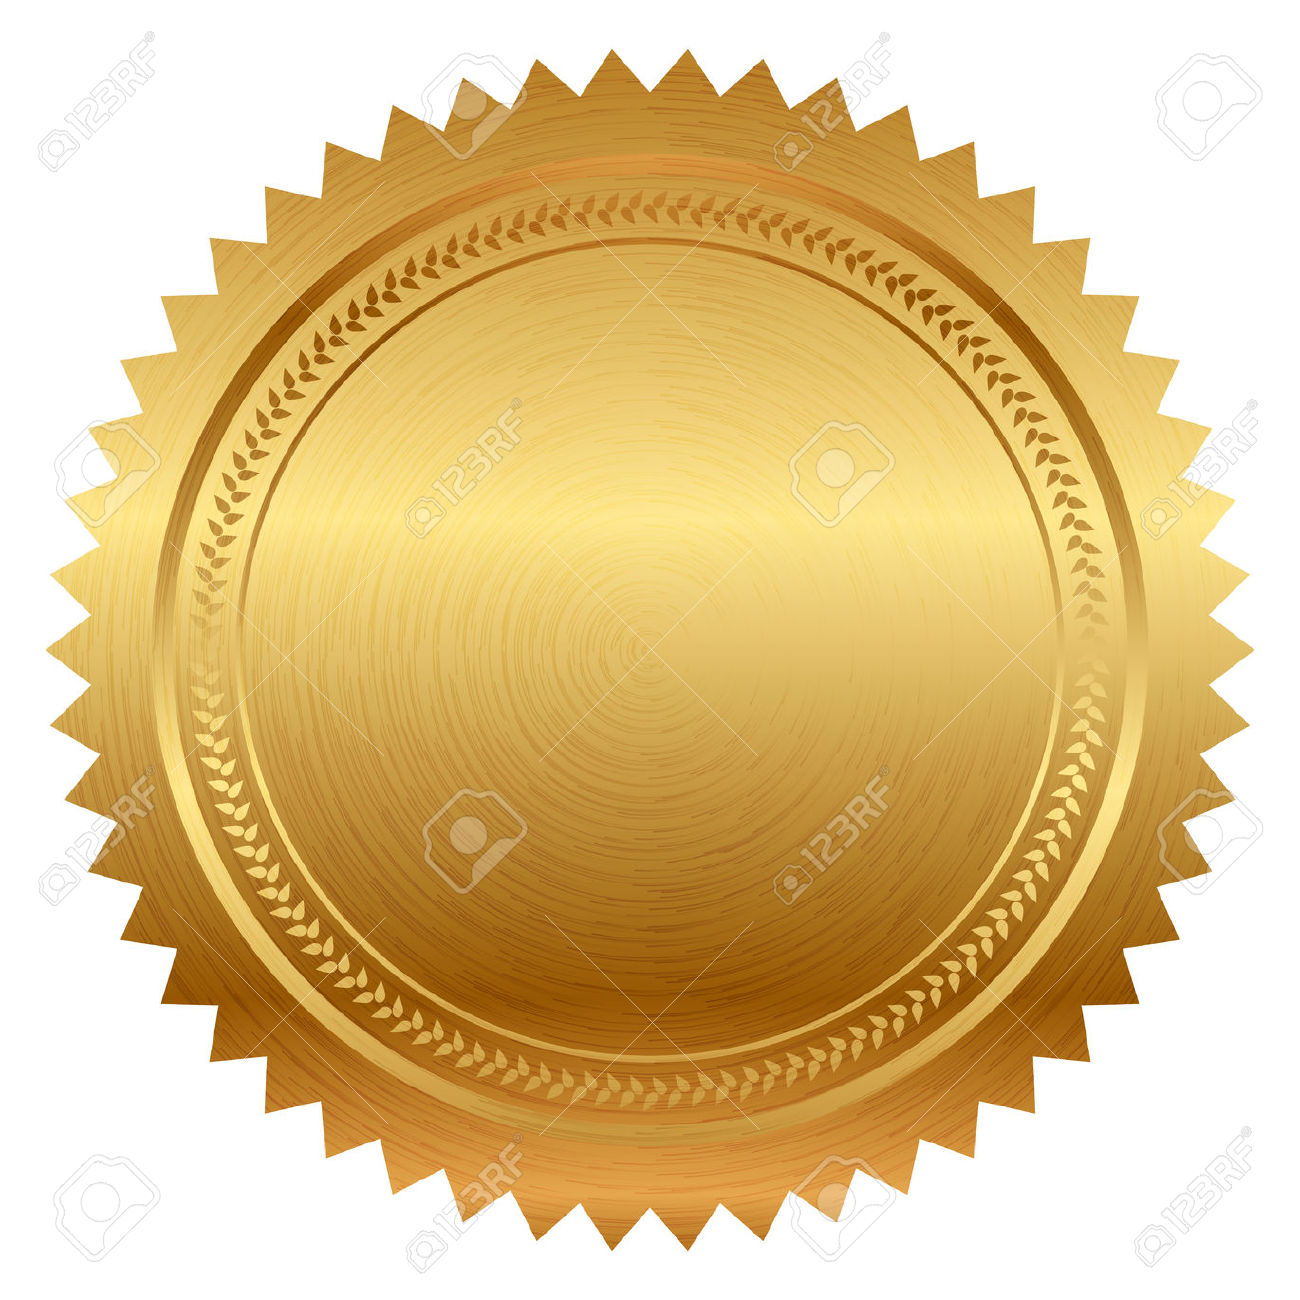 22,519 Gold Seal Stock Vector Illustration And Royalty Free Gold.